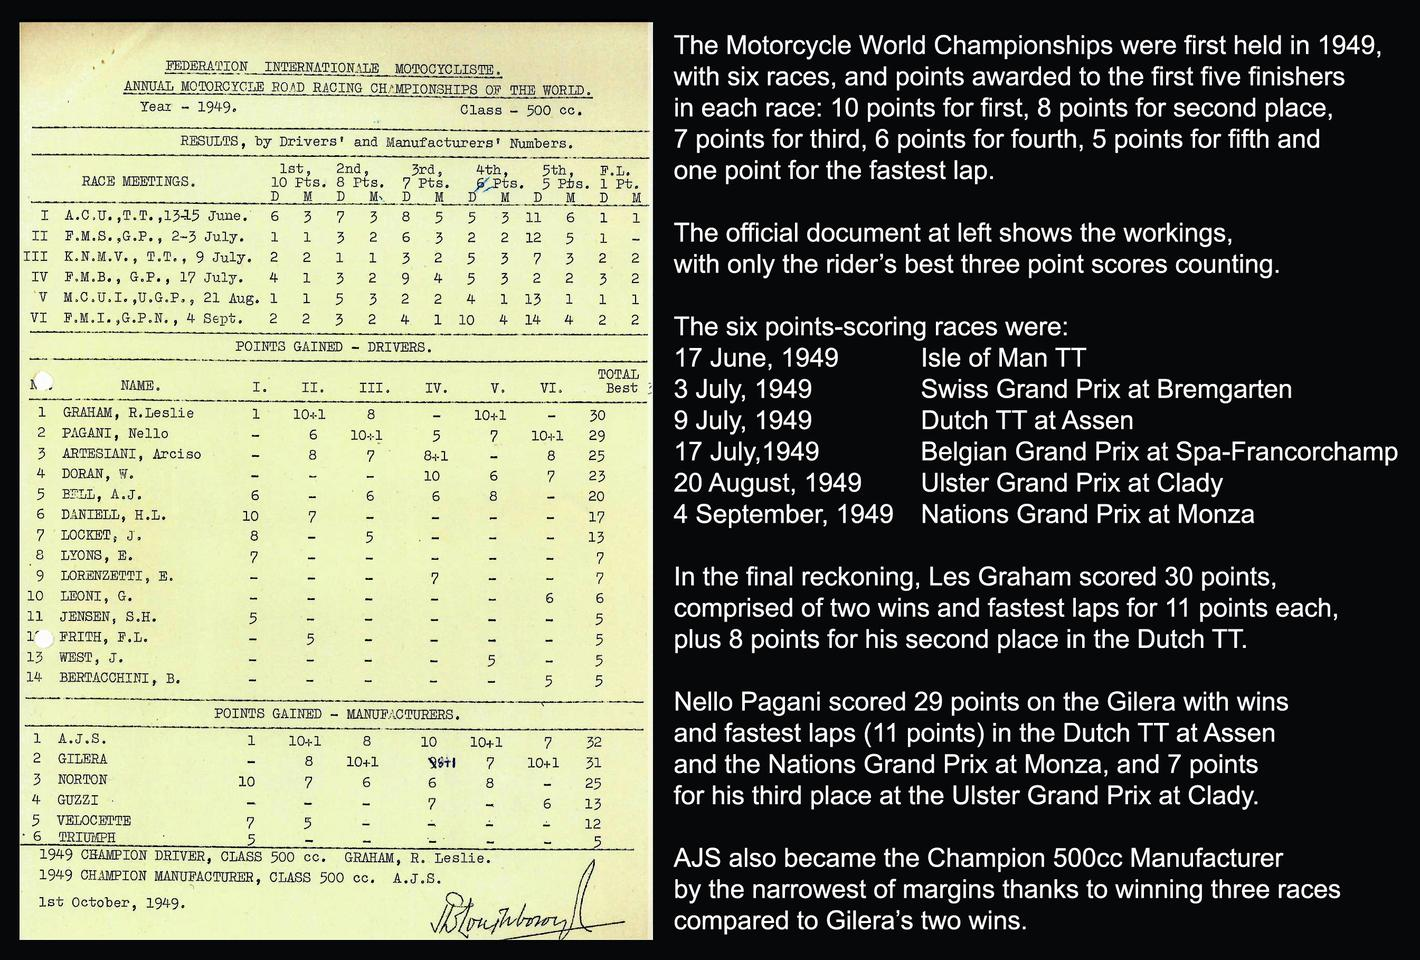 The 1949 F.I.M. Road Racing 500cc World Championship was won by Les Graham riding an E90 AJS Porcupine. This was the inaugural World 500cc Motorcycle Road Racing Championship and that's the official FIM document proclaiming Les Graham the World Champion rider and AJS the World Champion Manufacturer from the official MotoGP web site.